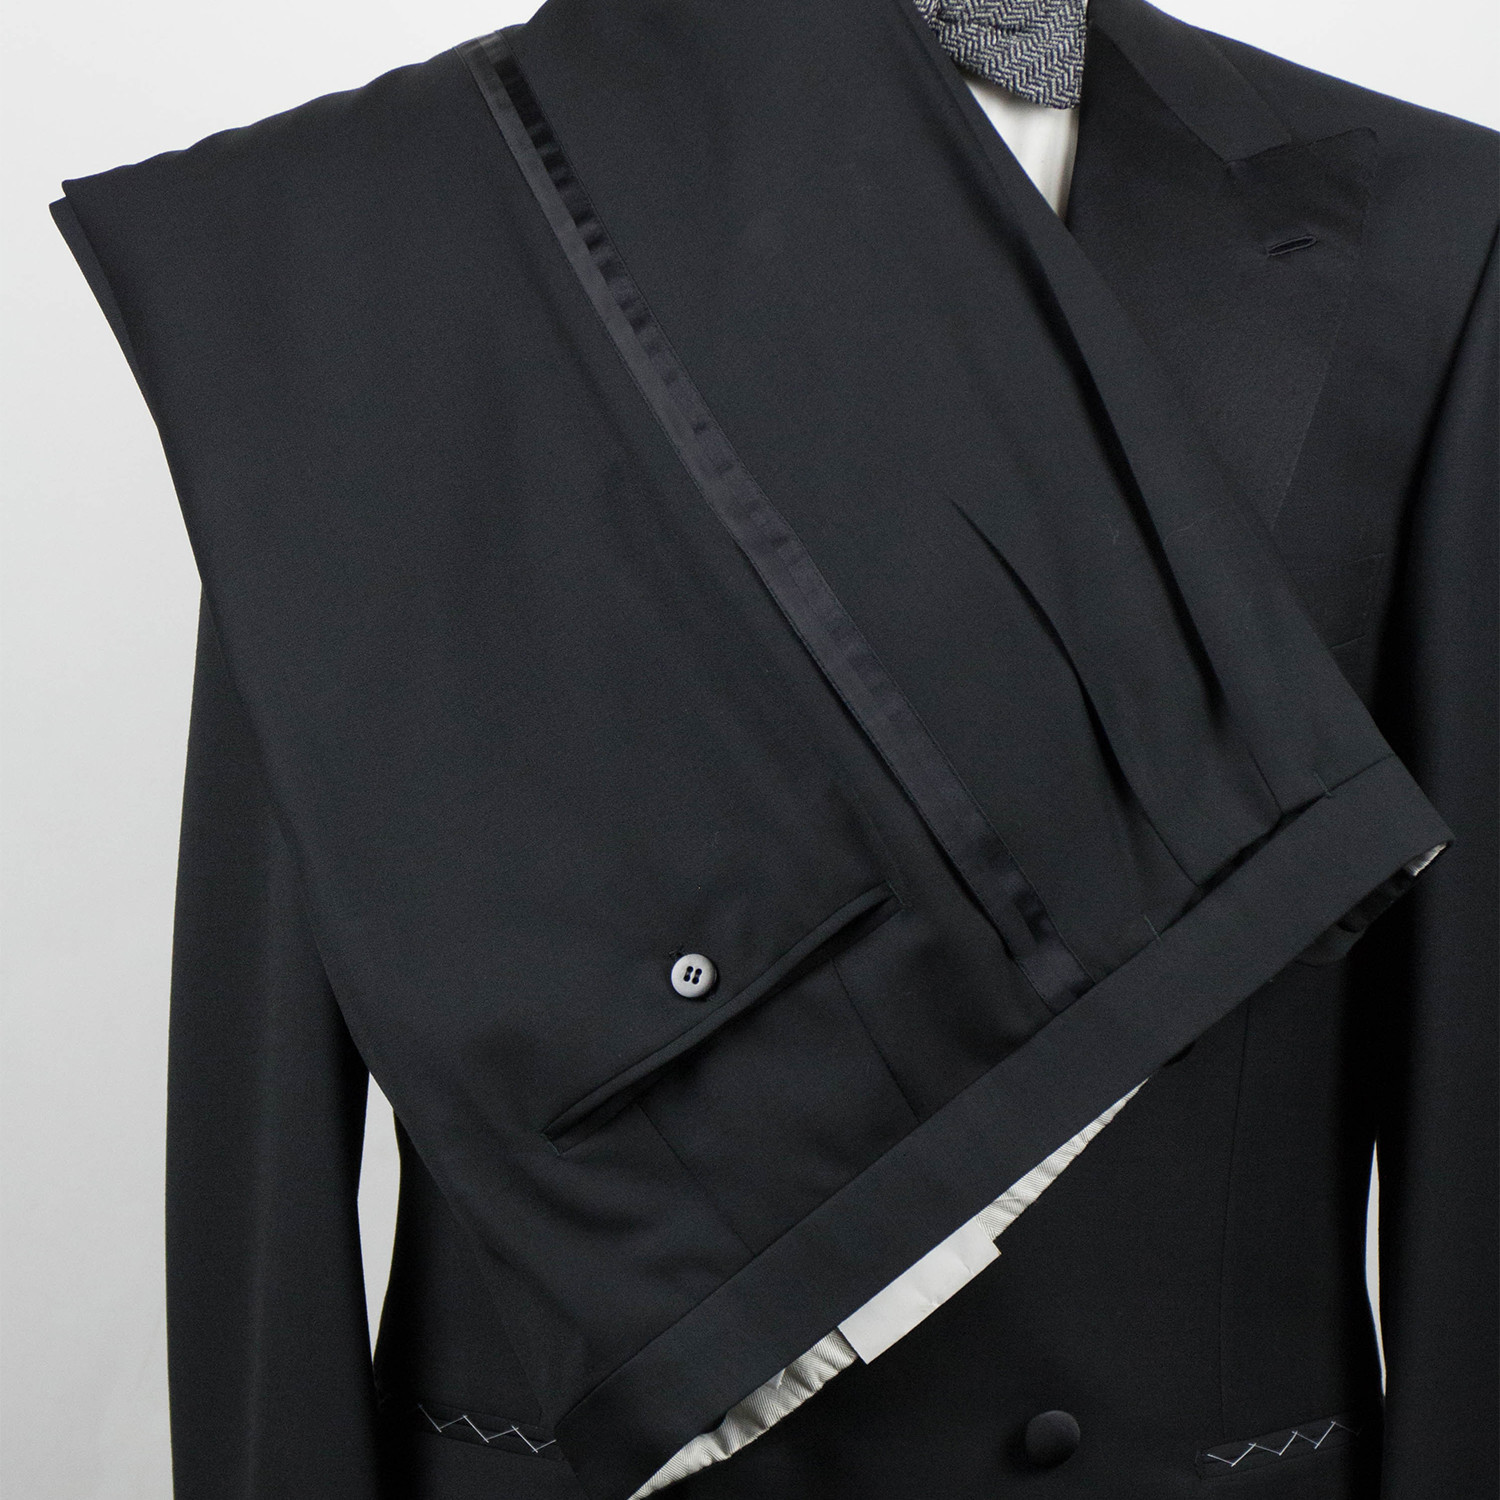 Brioni Mercadante Black Wool Double Breasted Tuxedo Jacket And Pants Size 48 Clothing, Shoes & Accessories